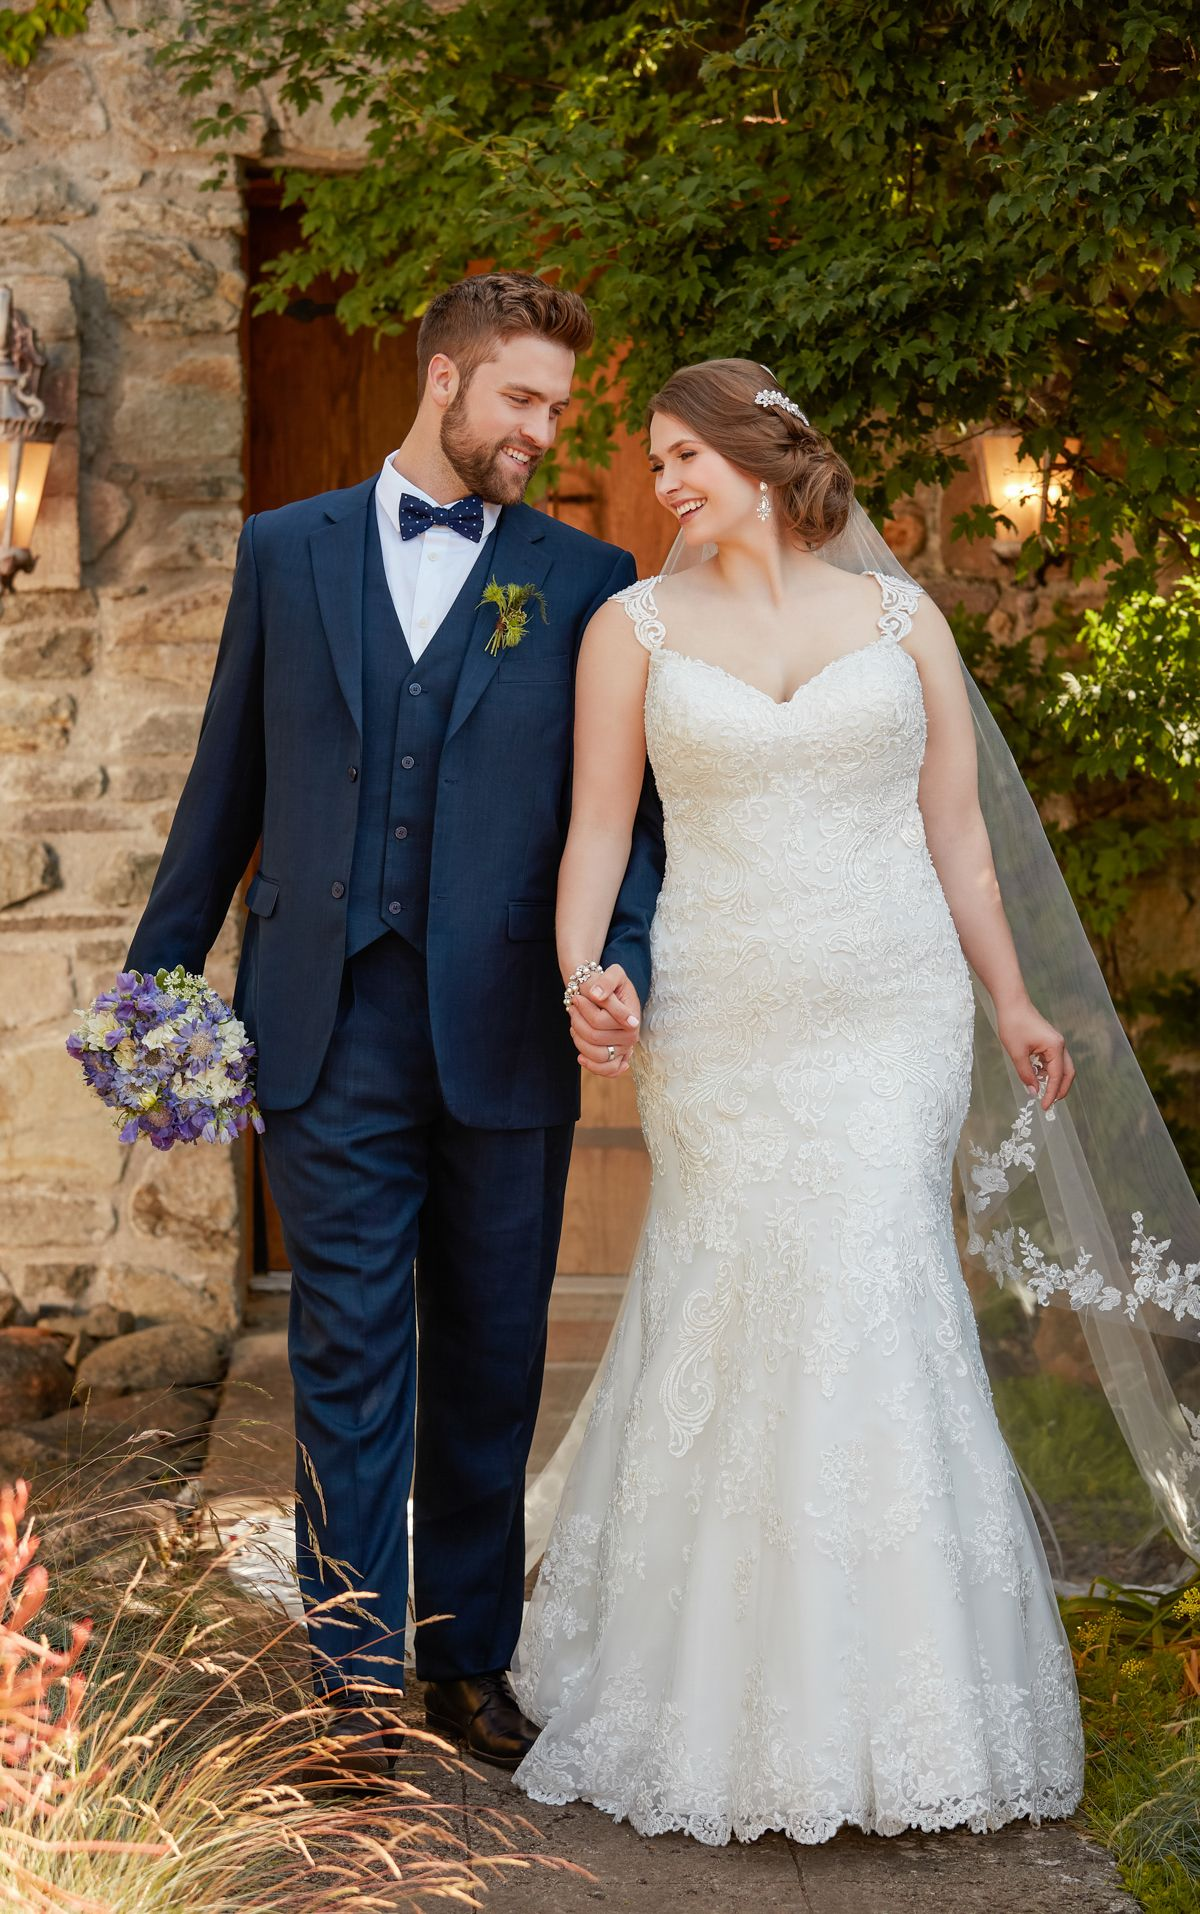 Beaded fit and flare plus size wedding dress with silver lace